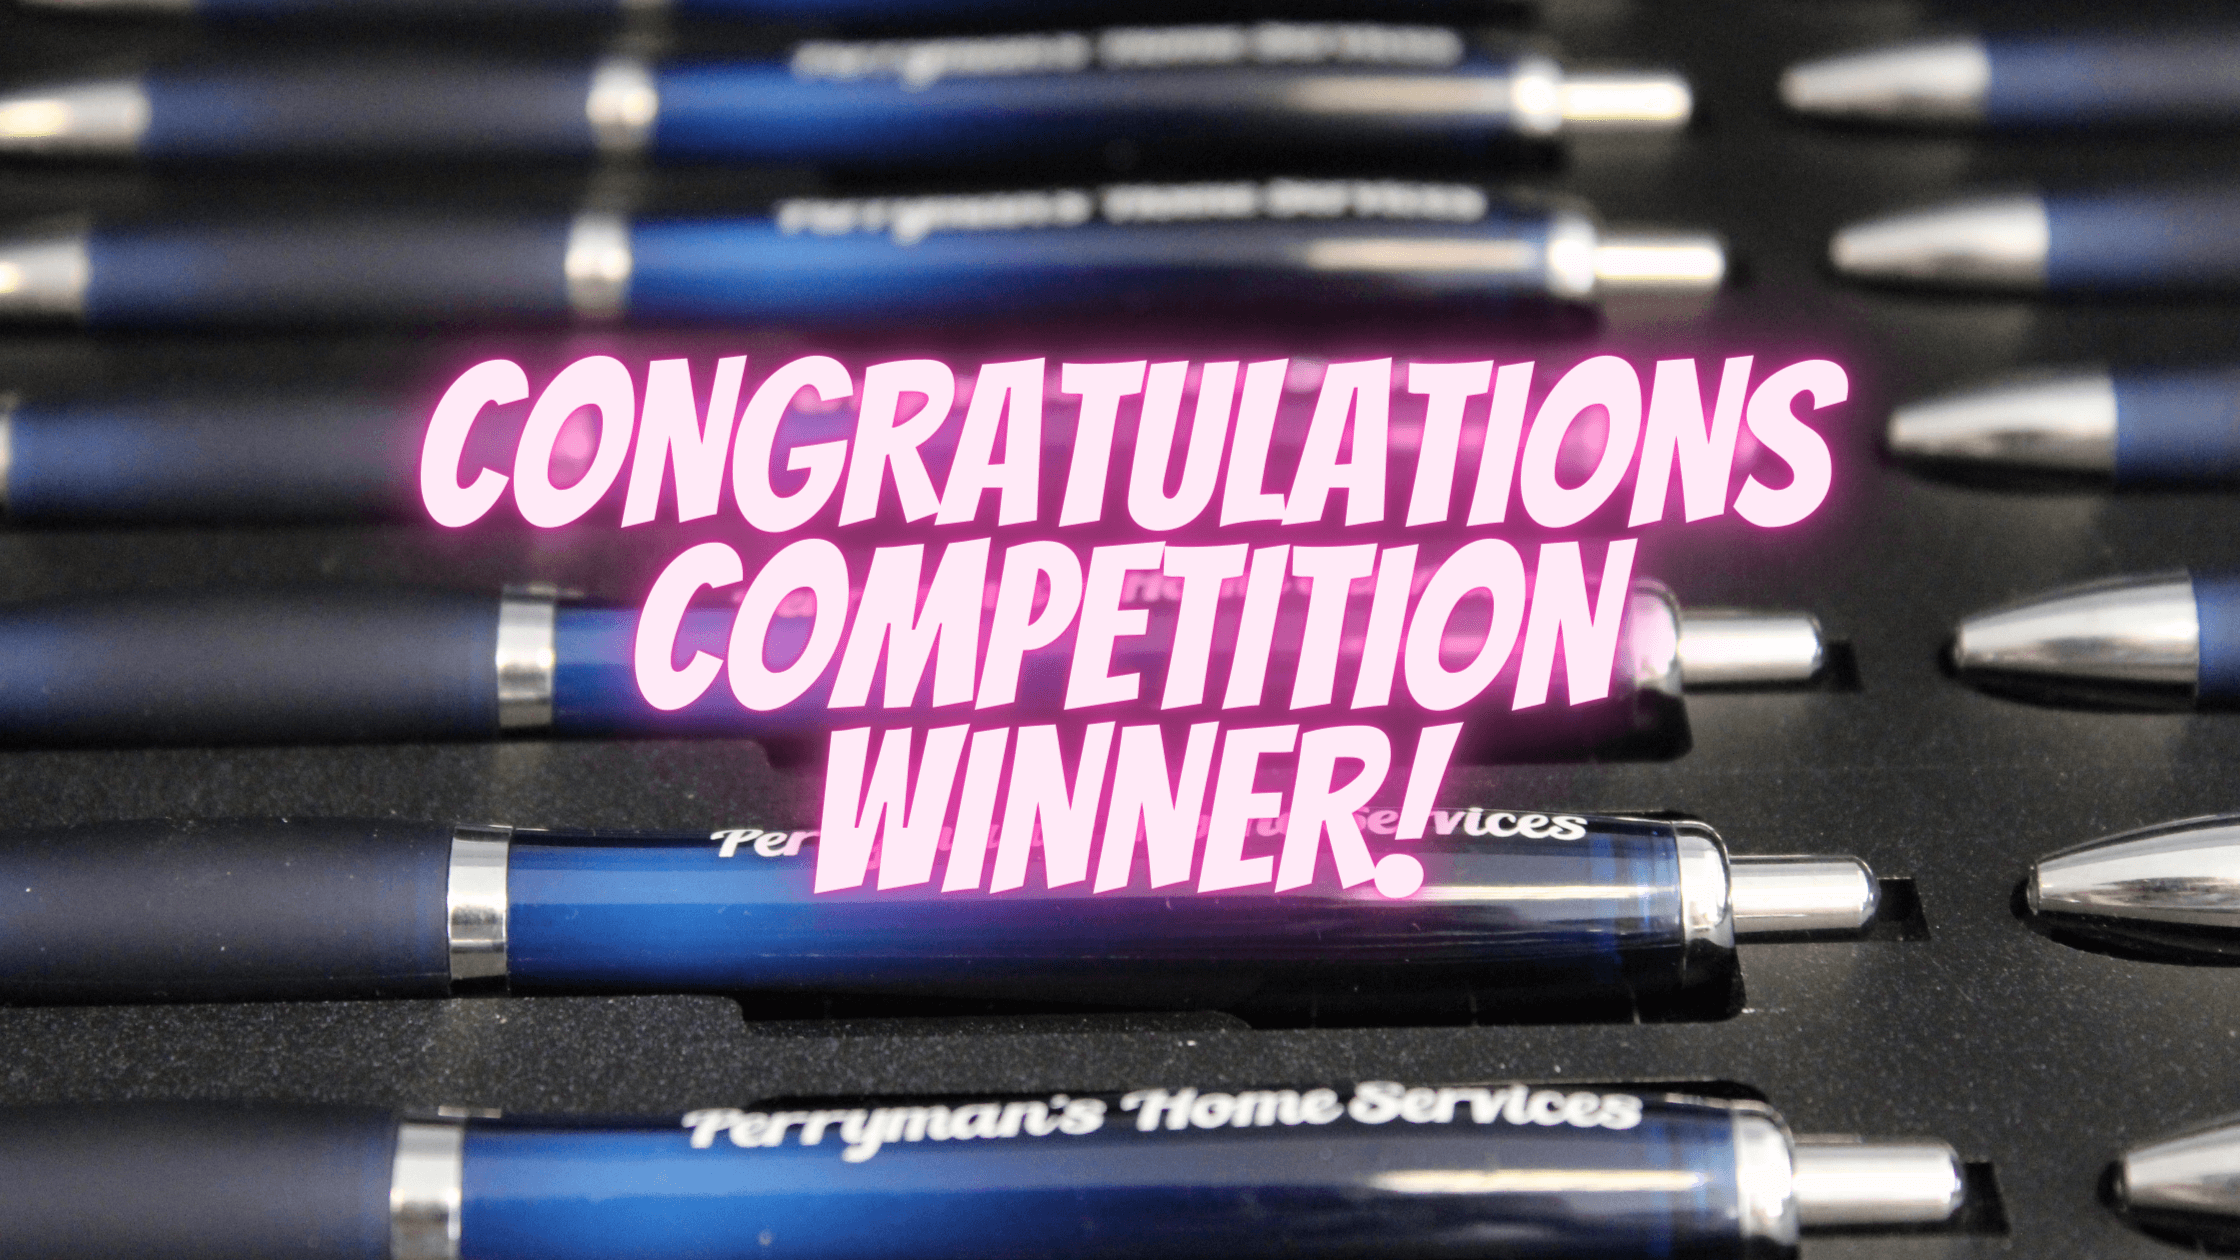 CONGRATULATIONS TO PERRYMANS HOME SERVICES